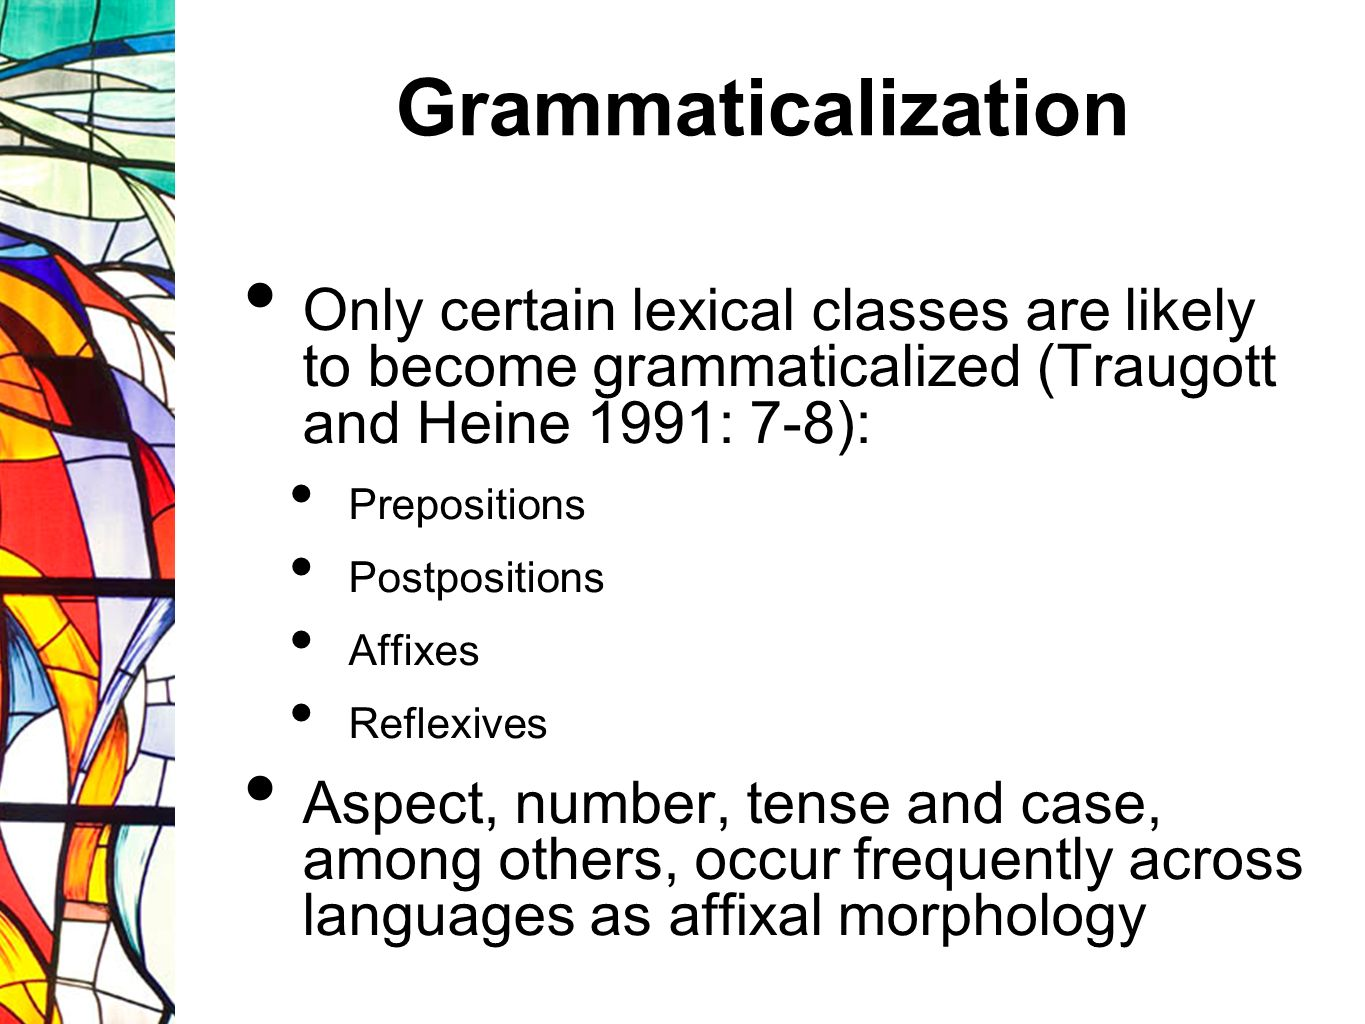 Grammaticalization Only certain lexical classes are likely to become grammaticalized (Traugott and Heine 1991: 7-8): Prepositions Postpositions Affixes Reflexives Aspect, number, tense and case, among others, occur frequently across languages as affixal morphology